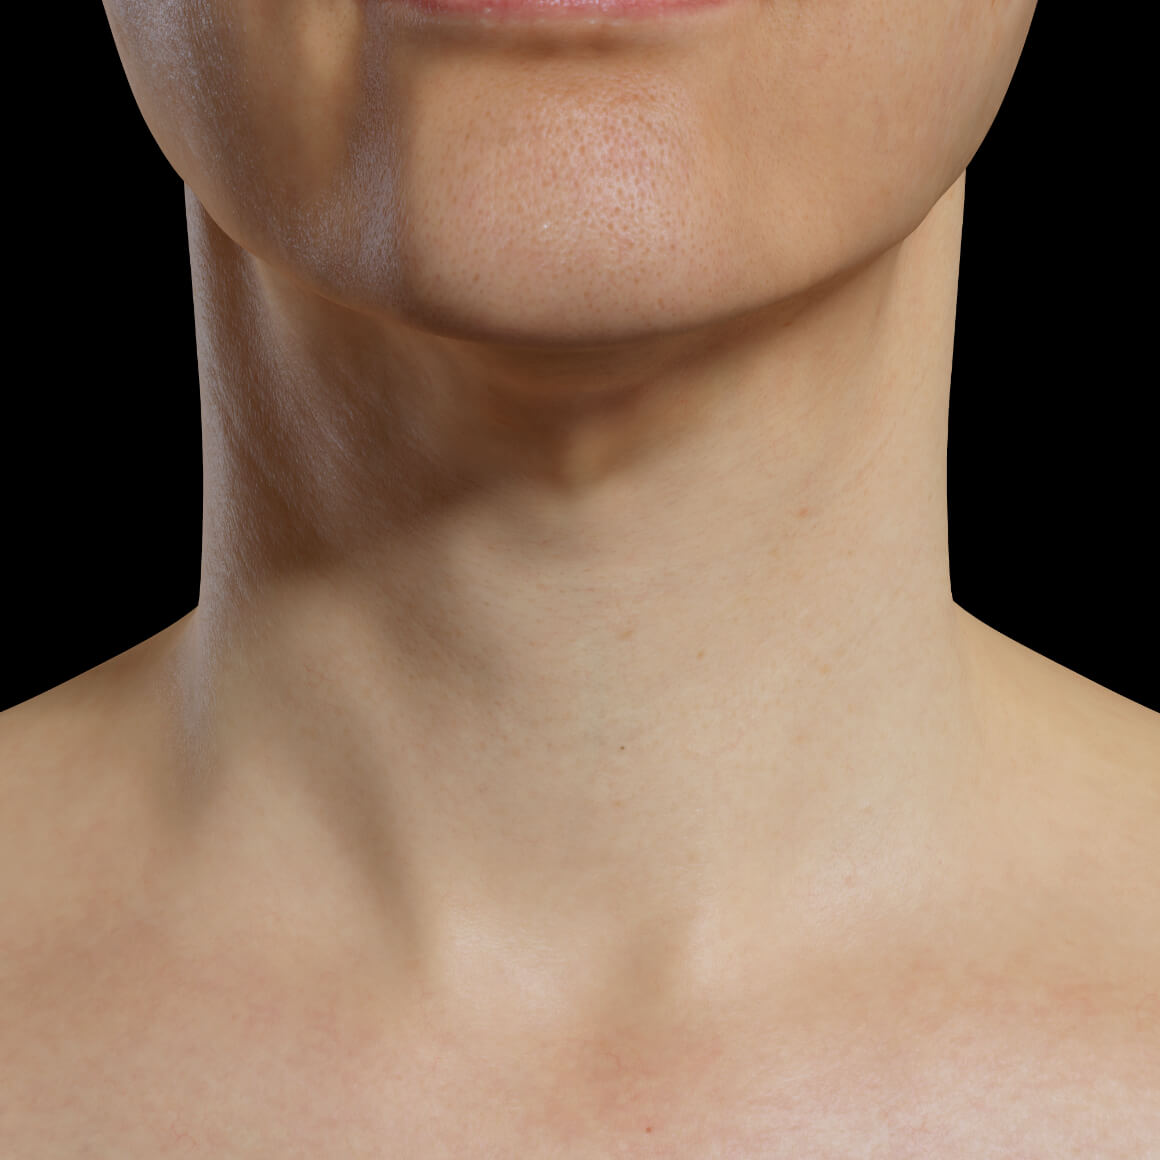 Female patient from Clinique Chloé facing front after a Profound RF treatment for skin tightening of the neck area